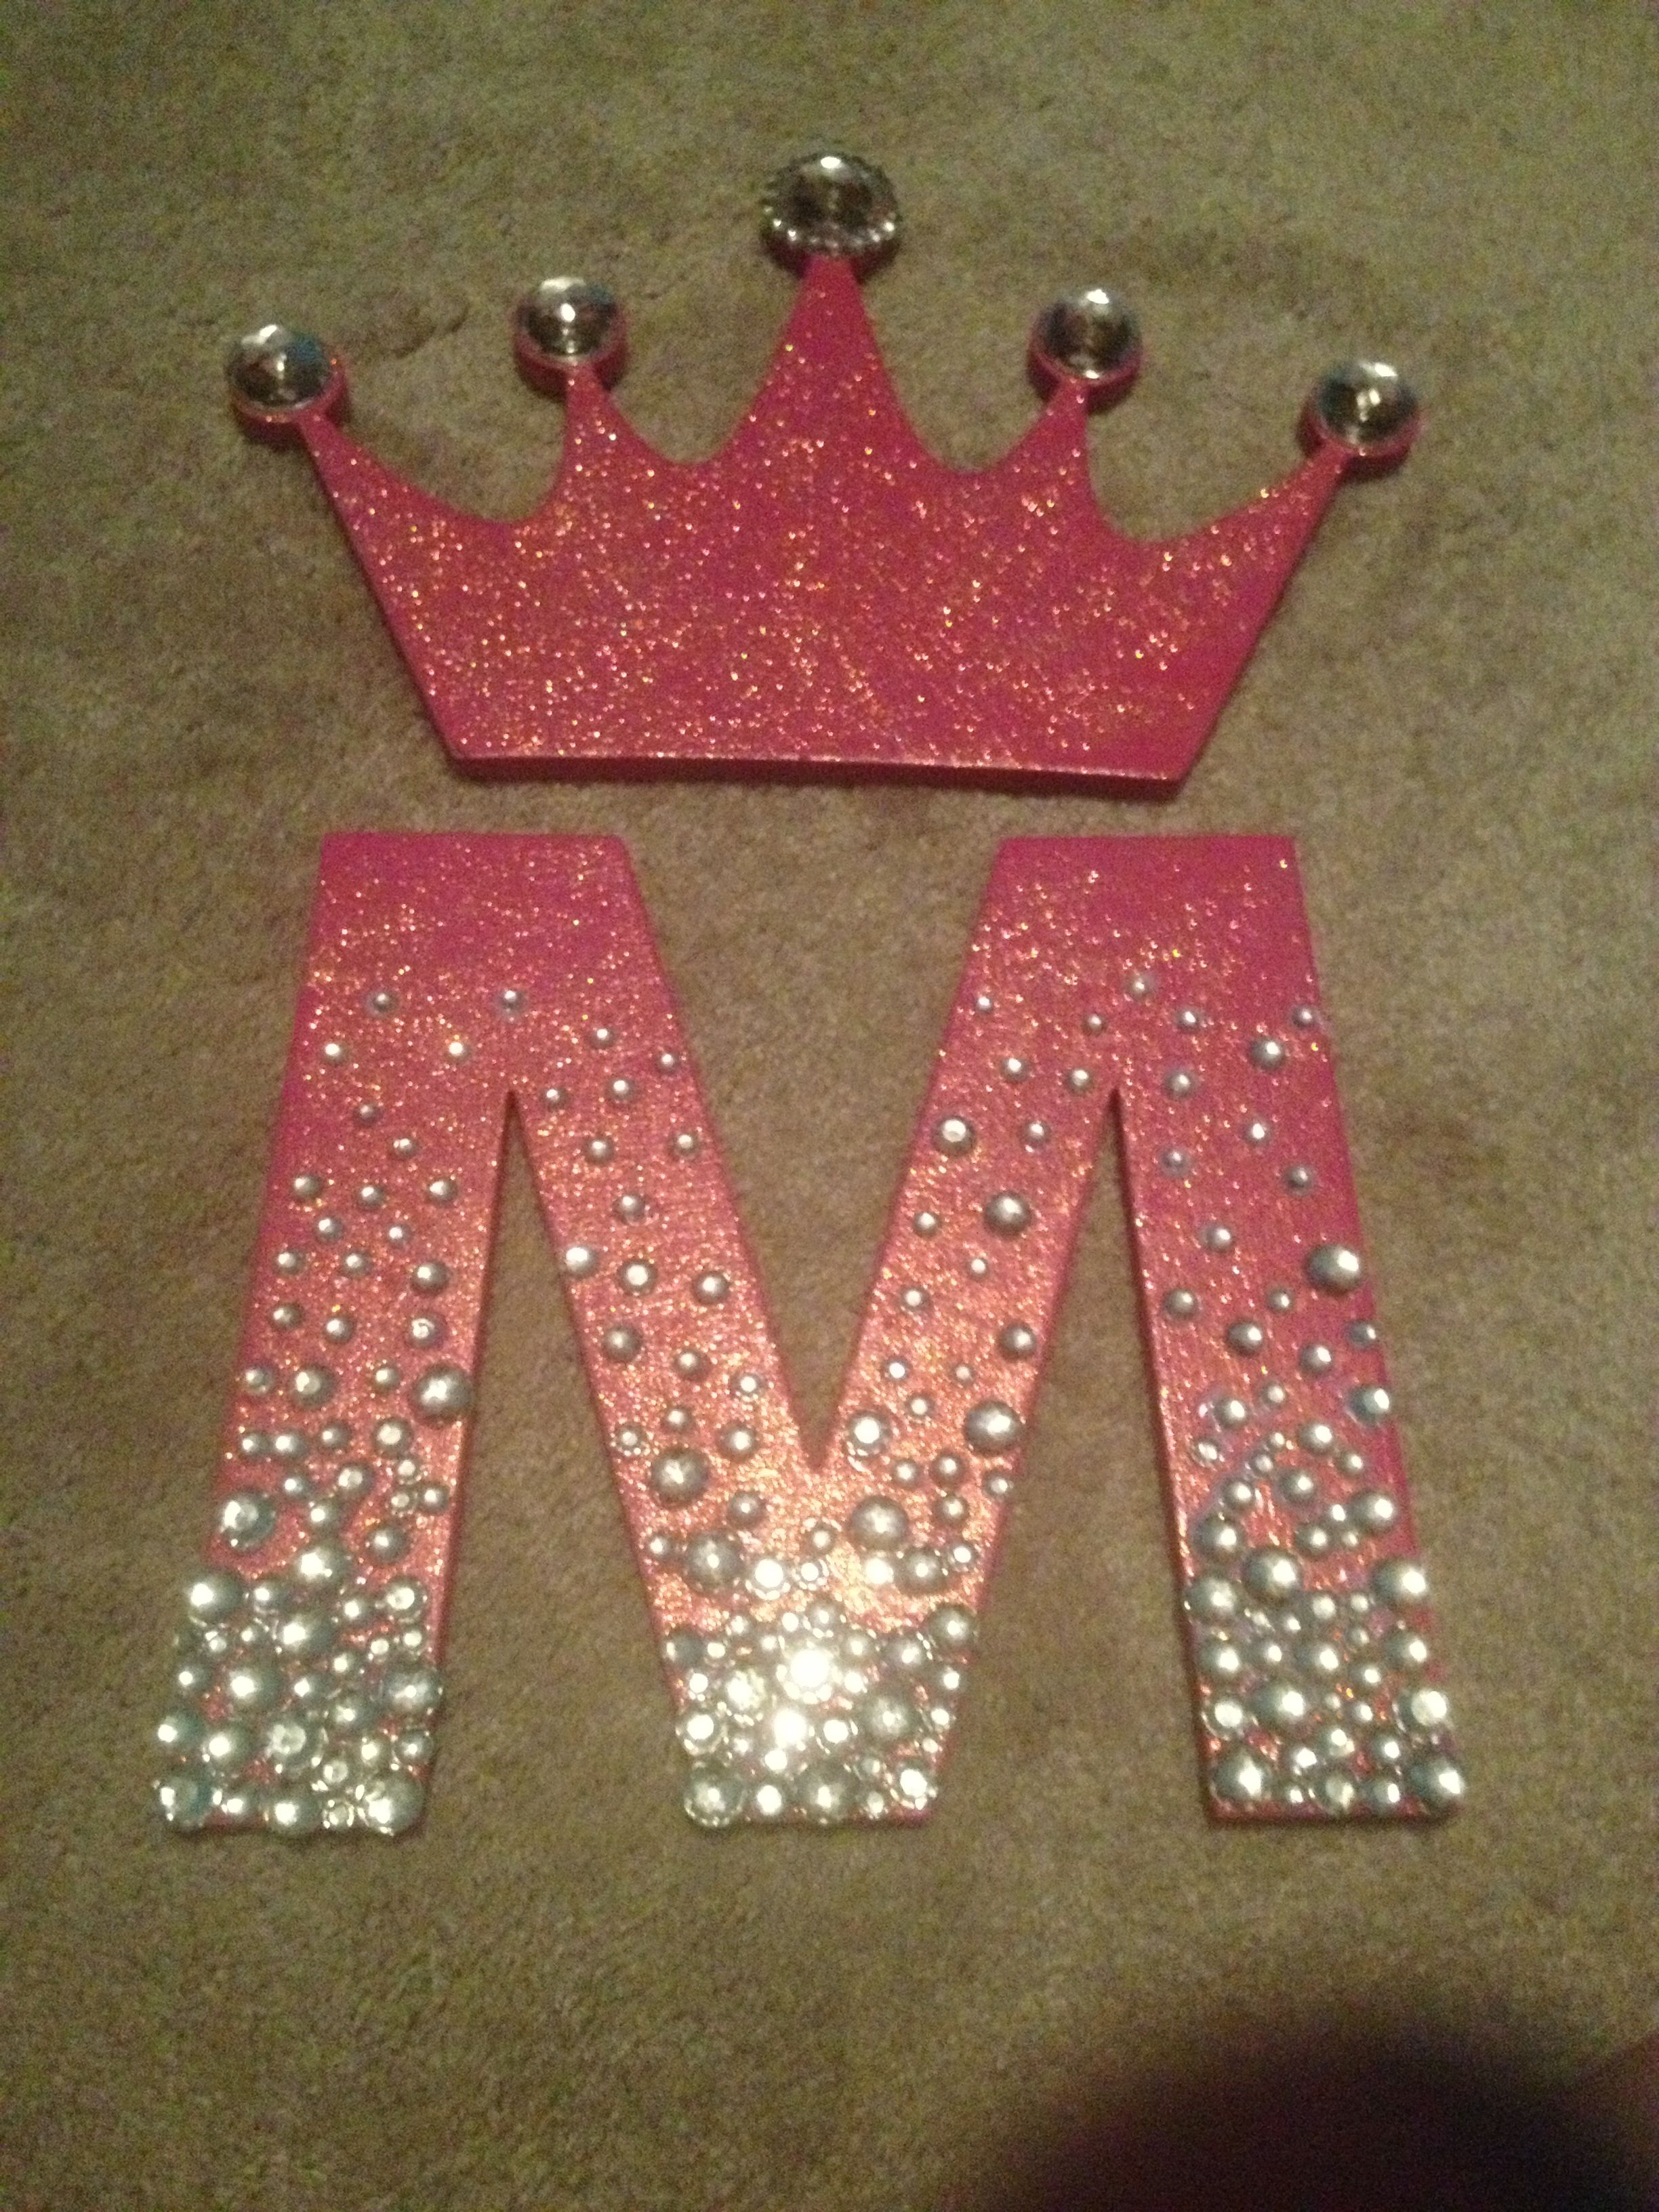 Letters Painted And Modge Podged Before Adding Glitter Hobby Lobby Gems Added After Finishing Letter A Crafts Wooden Letters Decorated Glitter Letters